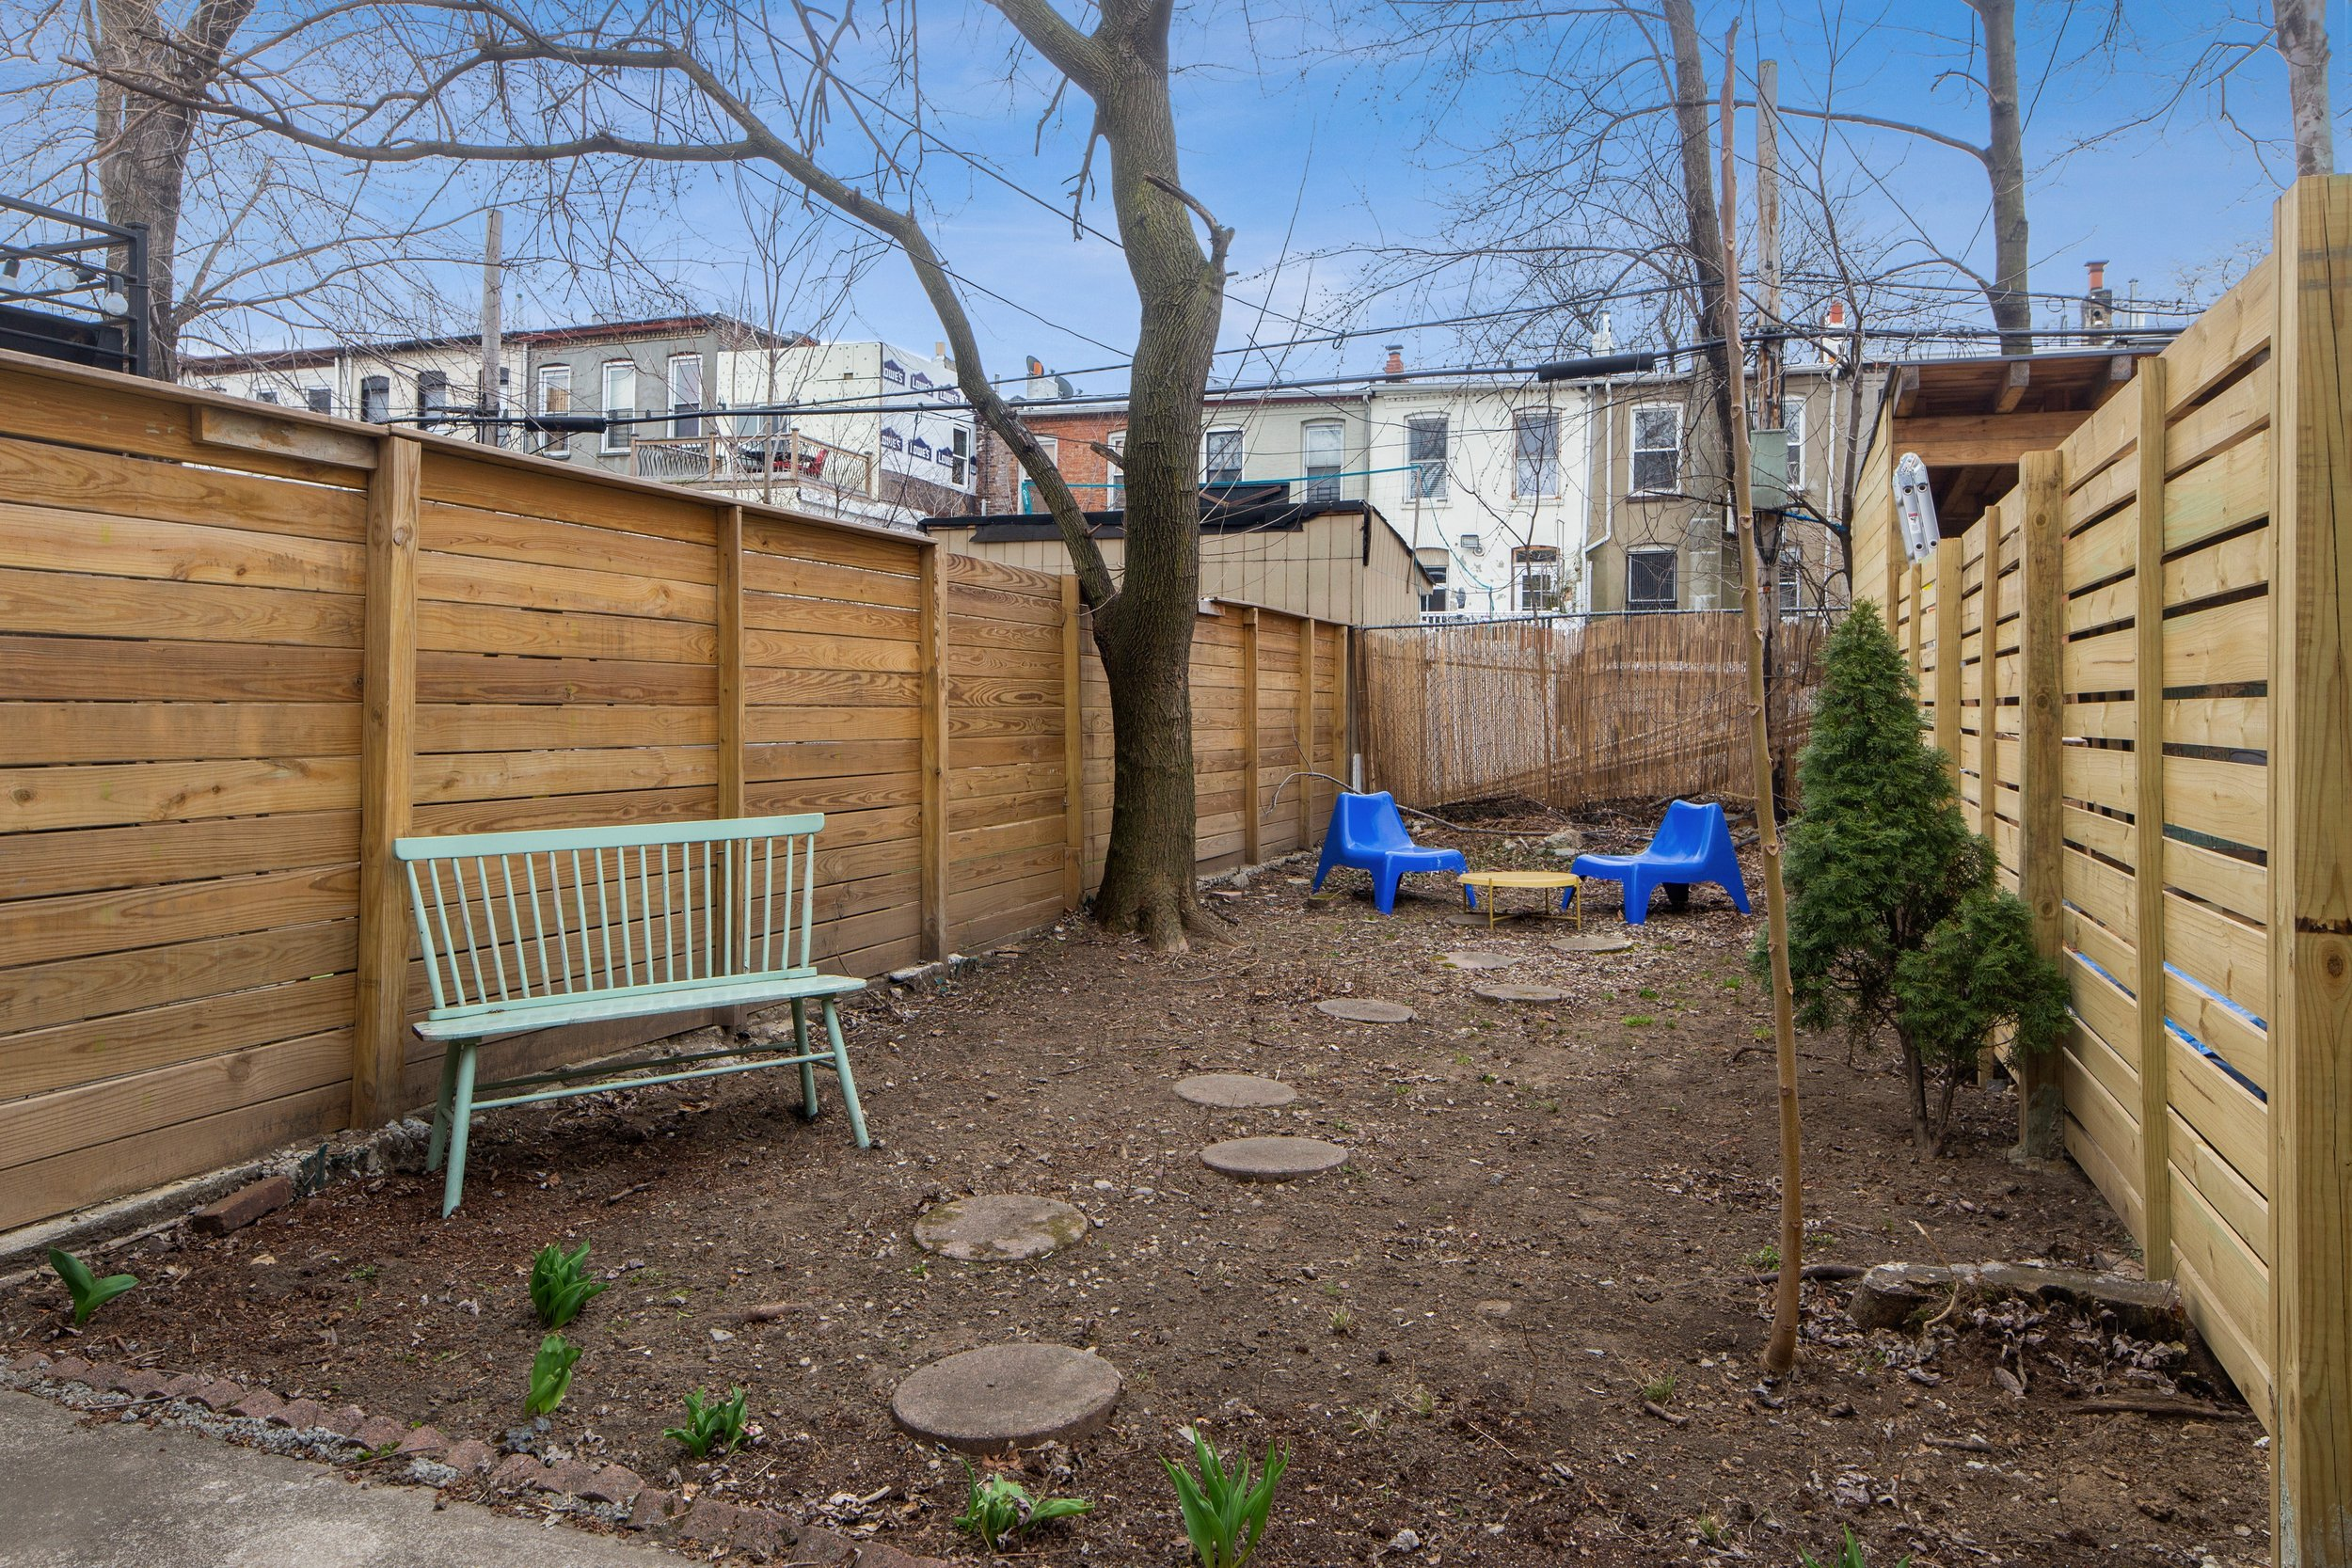 11_712monroestreet_26_BackYard_HiRes.jpg